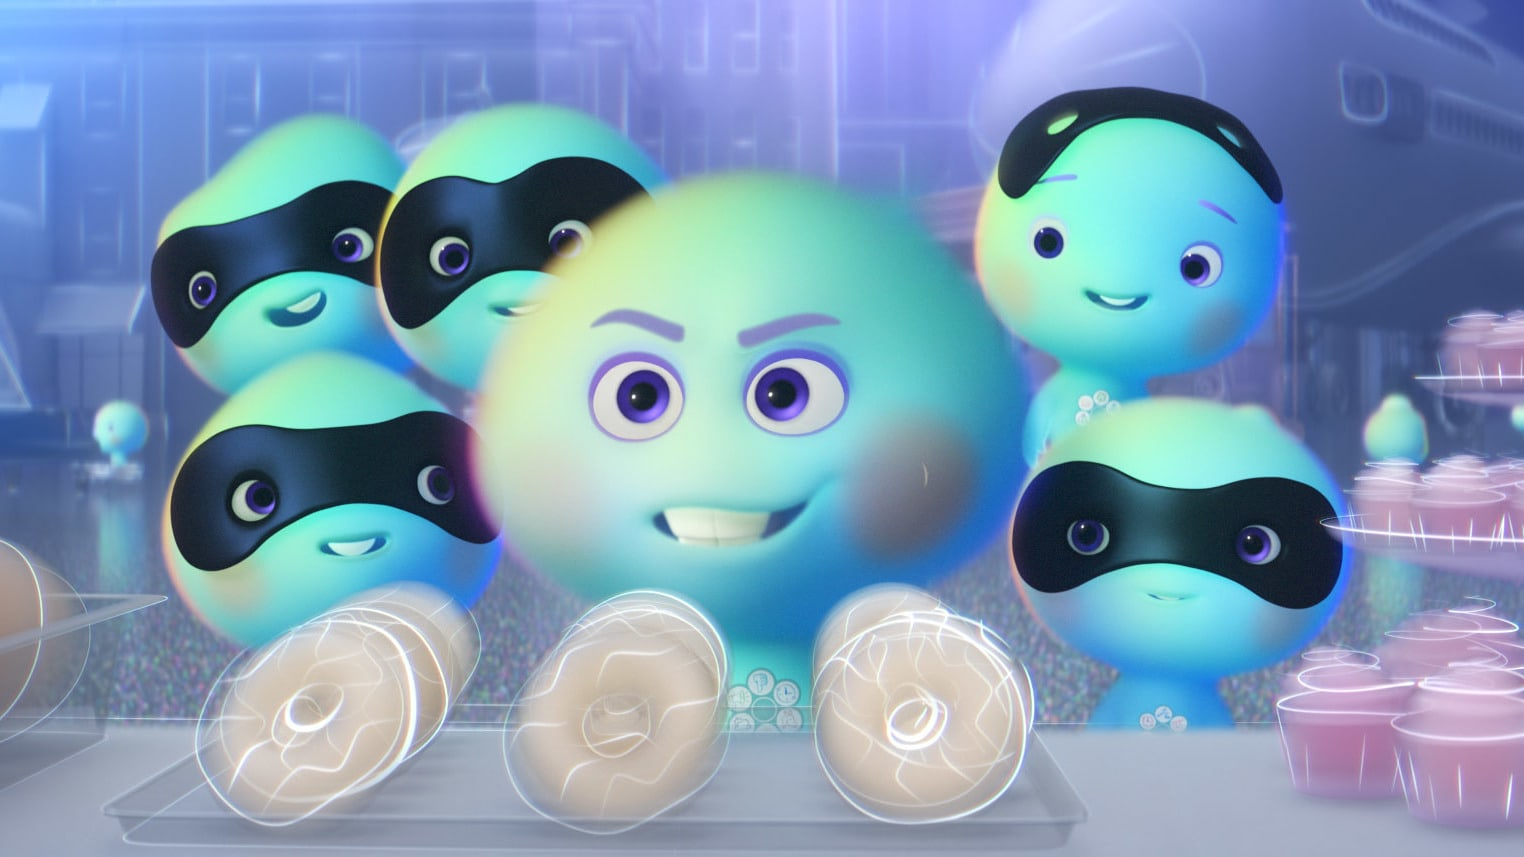 """In Pixar Animation Studios' """"22 vs. Earth,"""" new soul 22 (voice of Tina Fey) enlists a gang of five other new souls in her rebellious refusal to go to Earth. But her cohorts' activities lead to unexpected results. Set before the events of Disney and Pixar's """"Soul,"""" """"22 vs. Earth"""" is directed by Kevin Nolting and produced by Lourdes Alba. © 2021 Disney/Pixar. All Rights Reserved."""